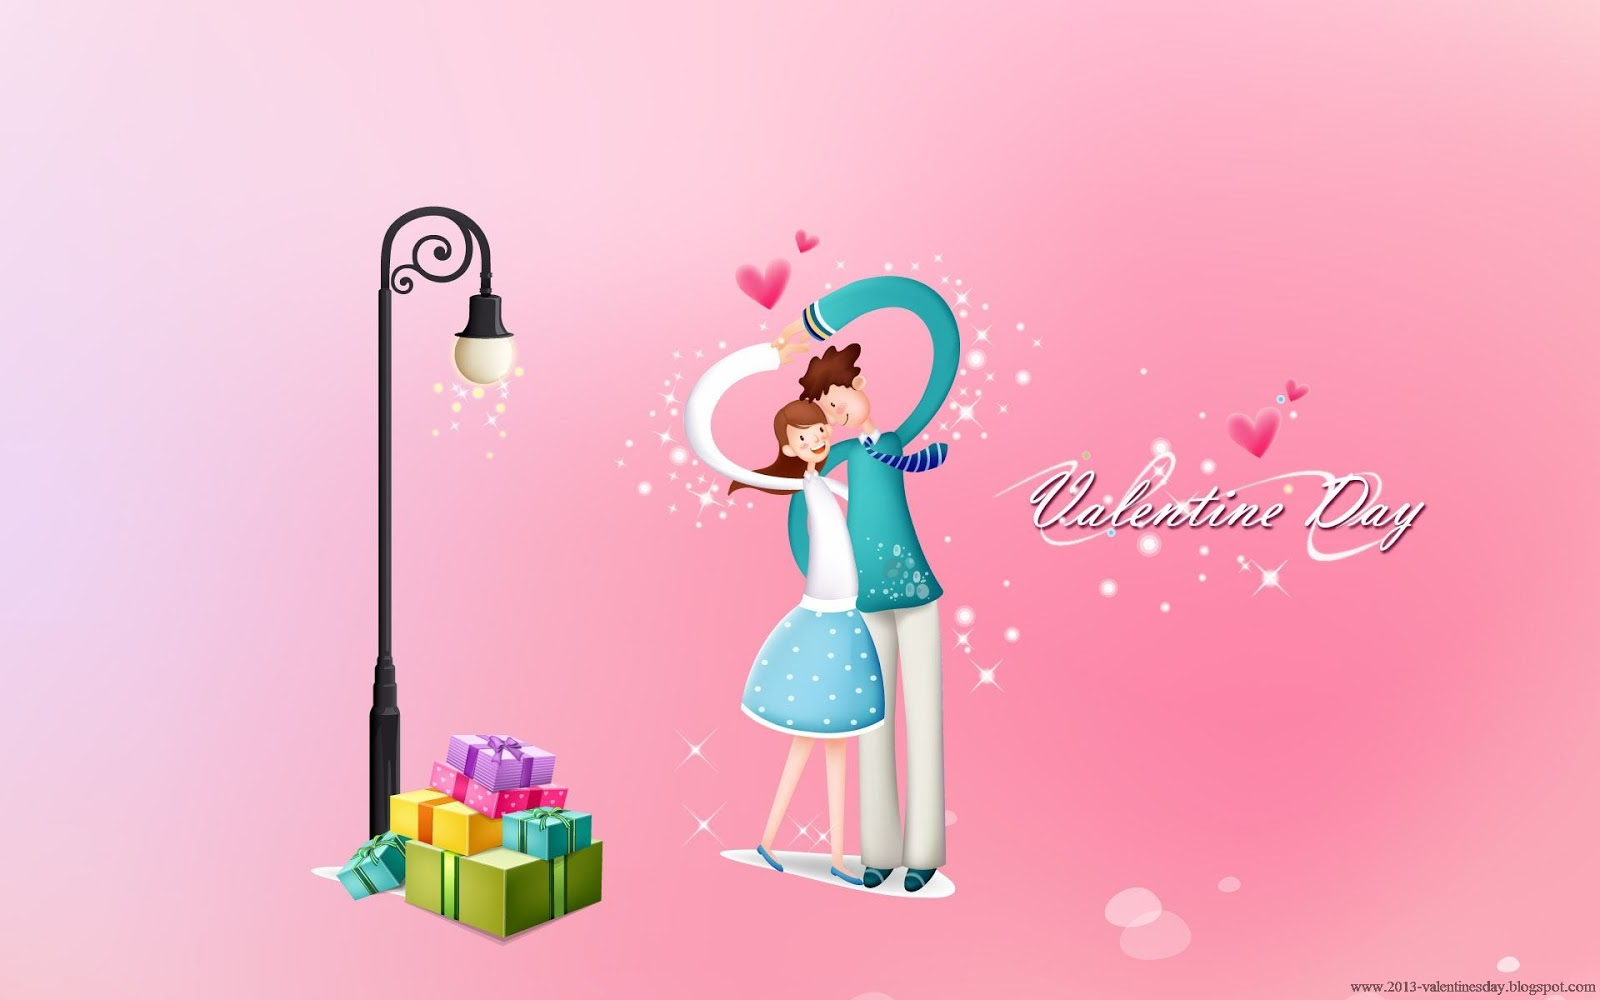 cartoon Love Full Hd Wallpaper : cute cartoon couple Love Hd wallpapers for Valentines day ~ Valentines day ideas, valentine s ...